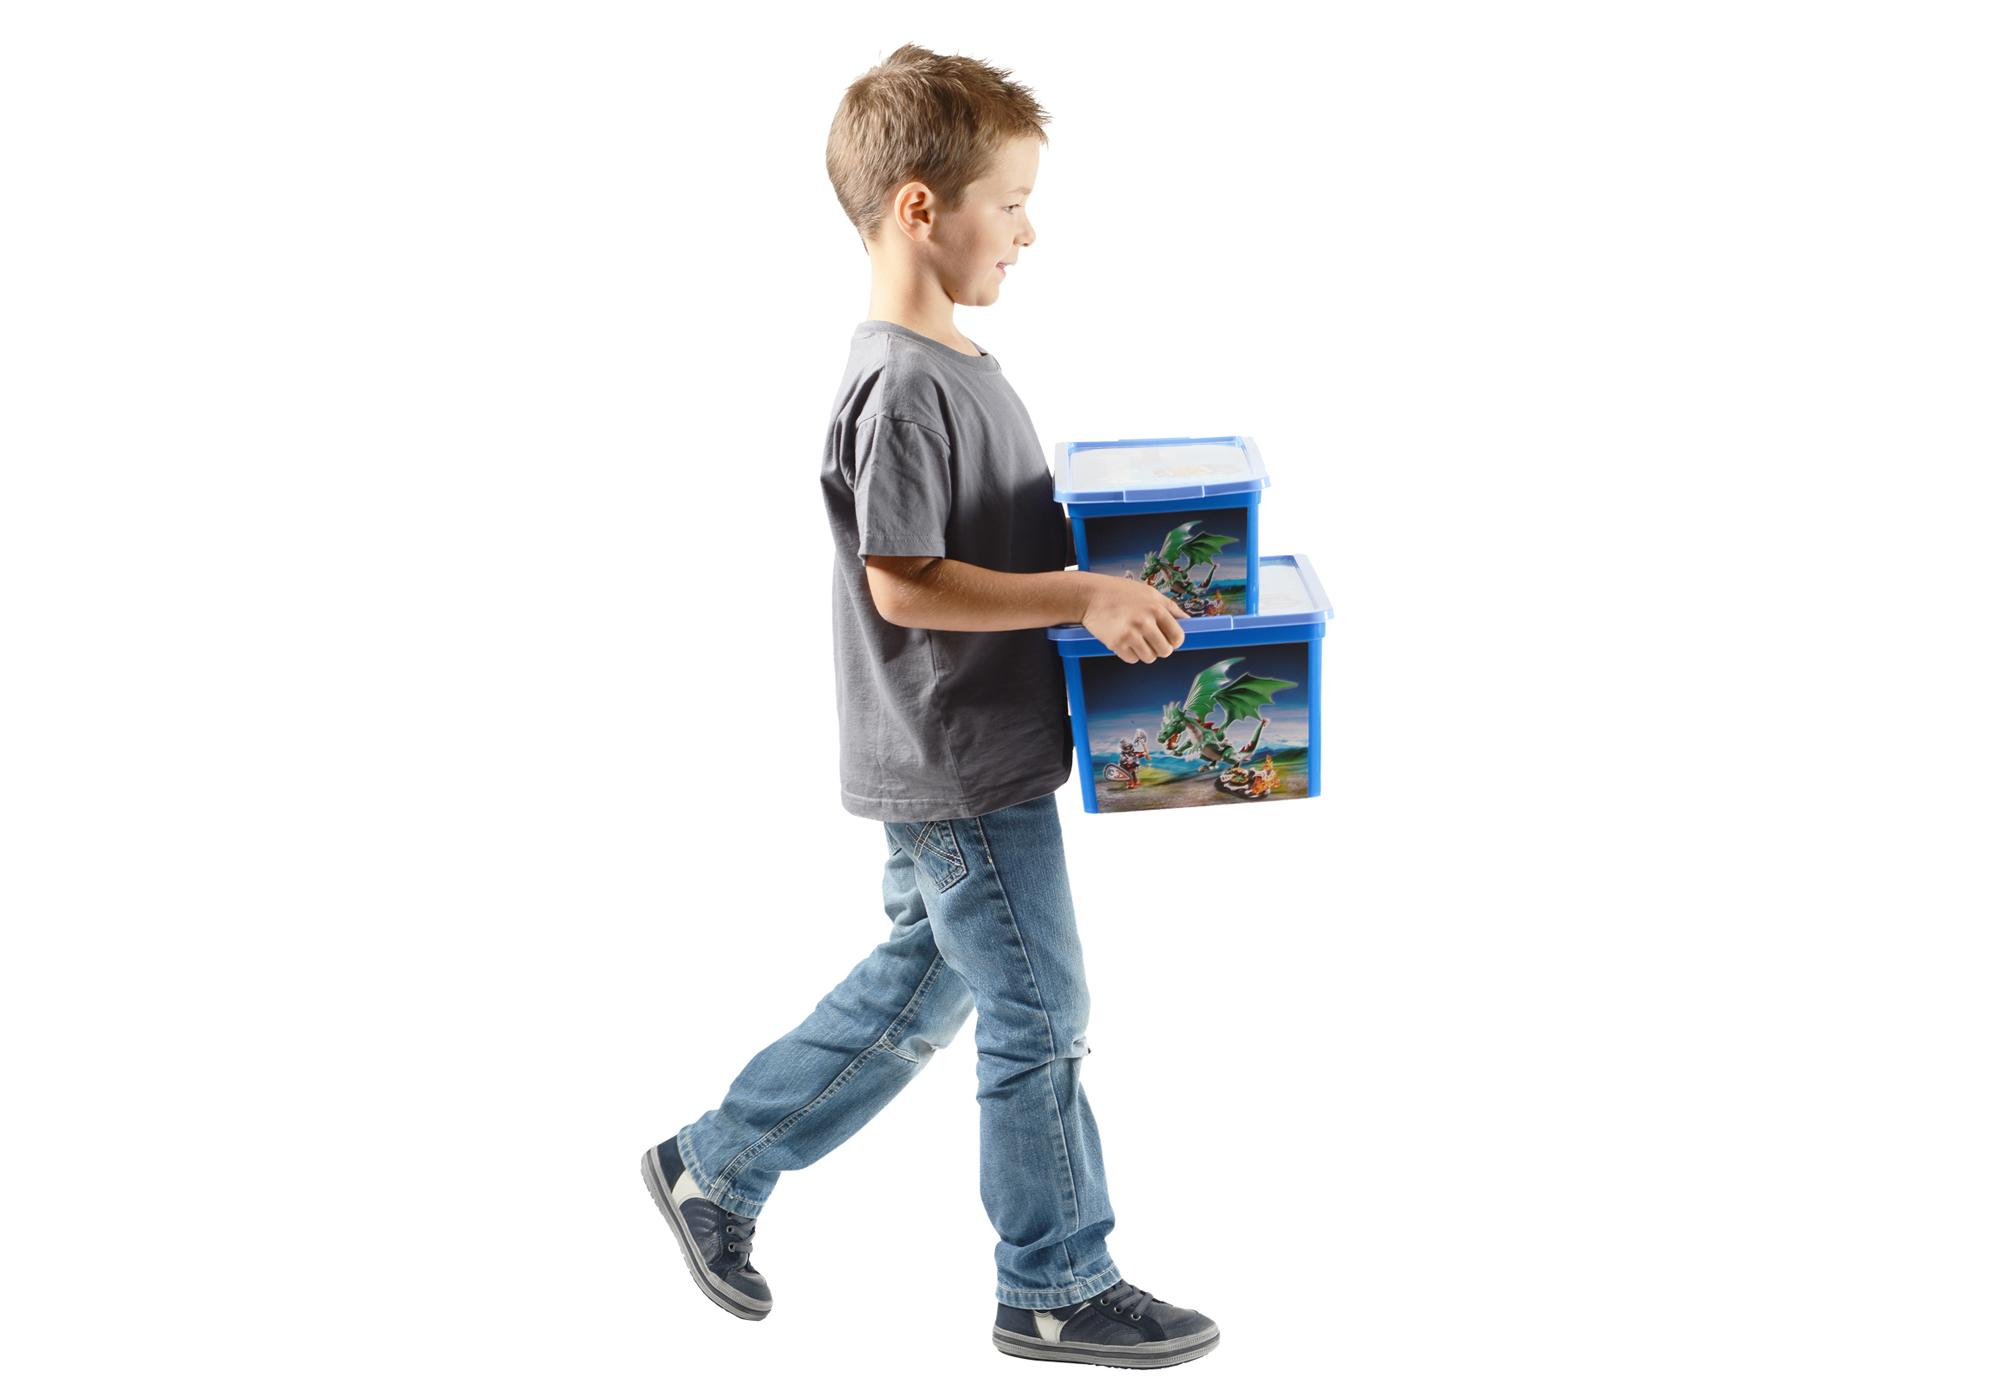 http://media.playmobil.com/i/playmobil/80487_product_extra2/12L RITTER Aufbewahrungsbox